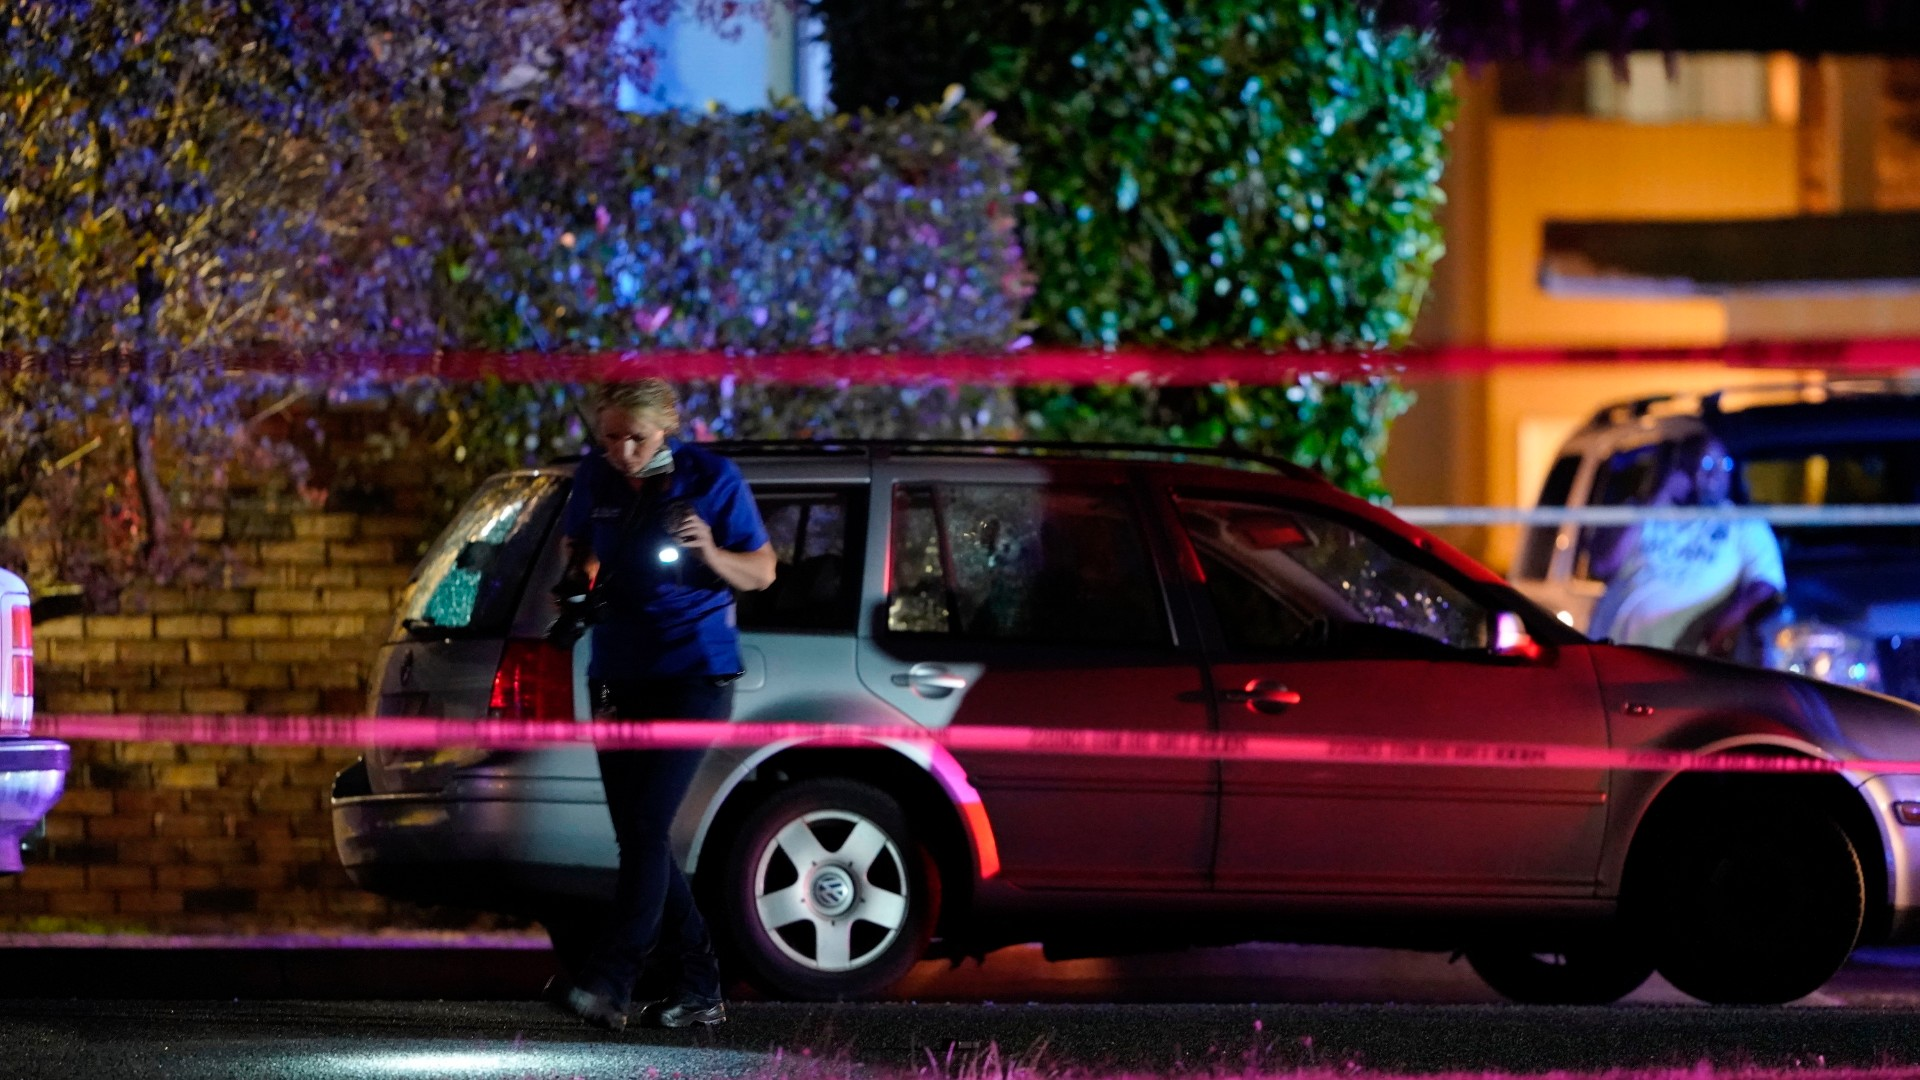 An investigator works at a scene where a man suspected of fatally shooting a supporter of a right-wing group in Portland, Ore., last week was killed as investigators moved in to arrest him in Lacey, Wash., Thursday, Sept. 3, 2020. (AP Photo/Ted Warren)